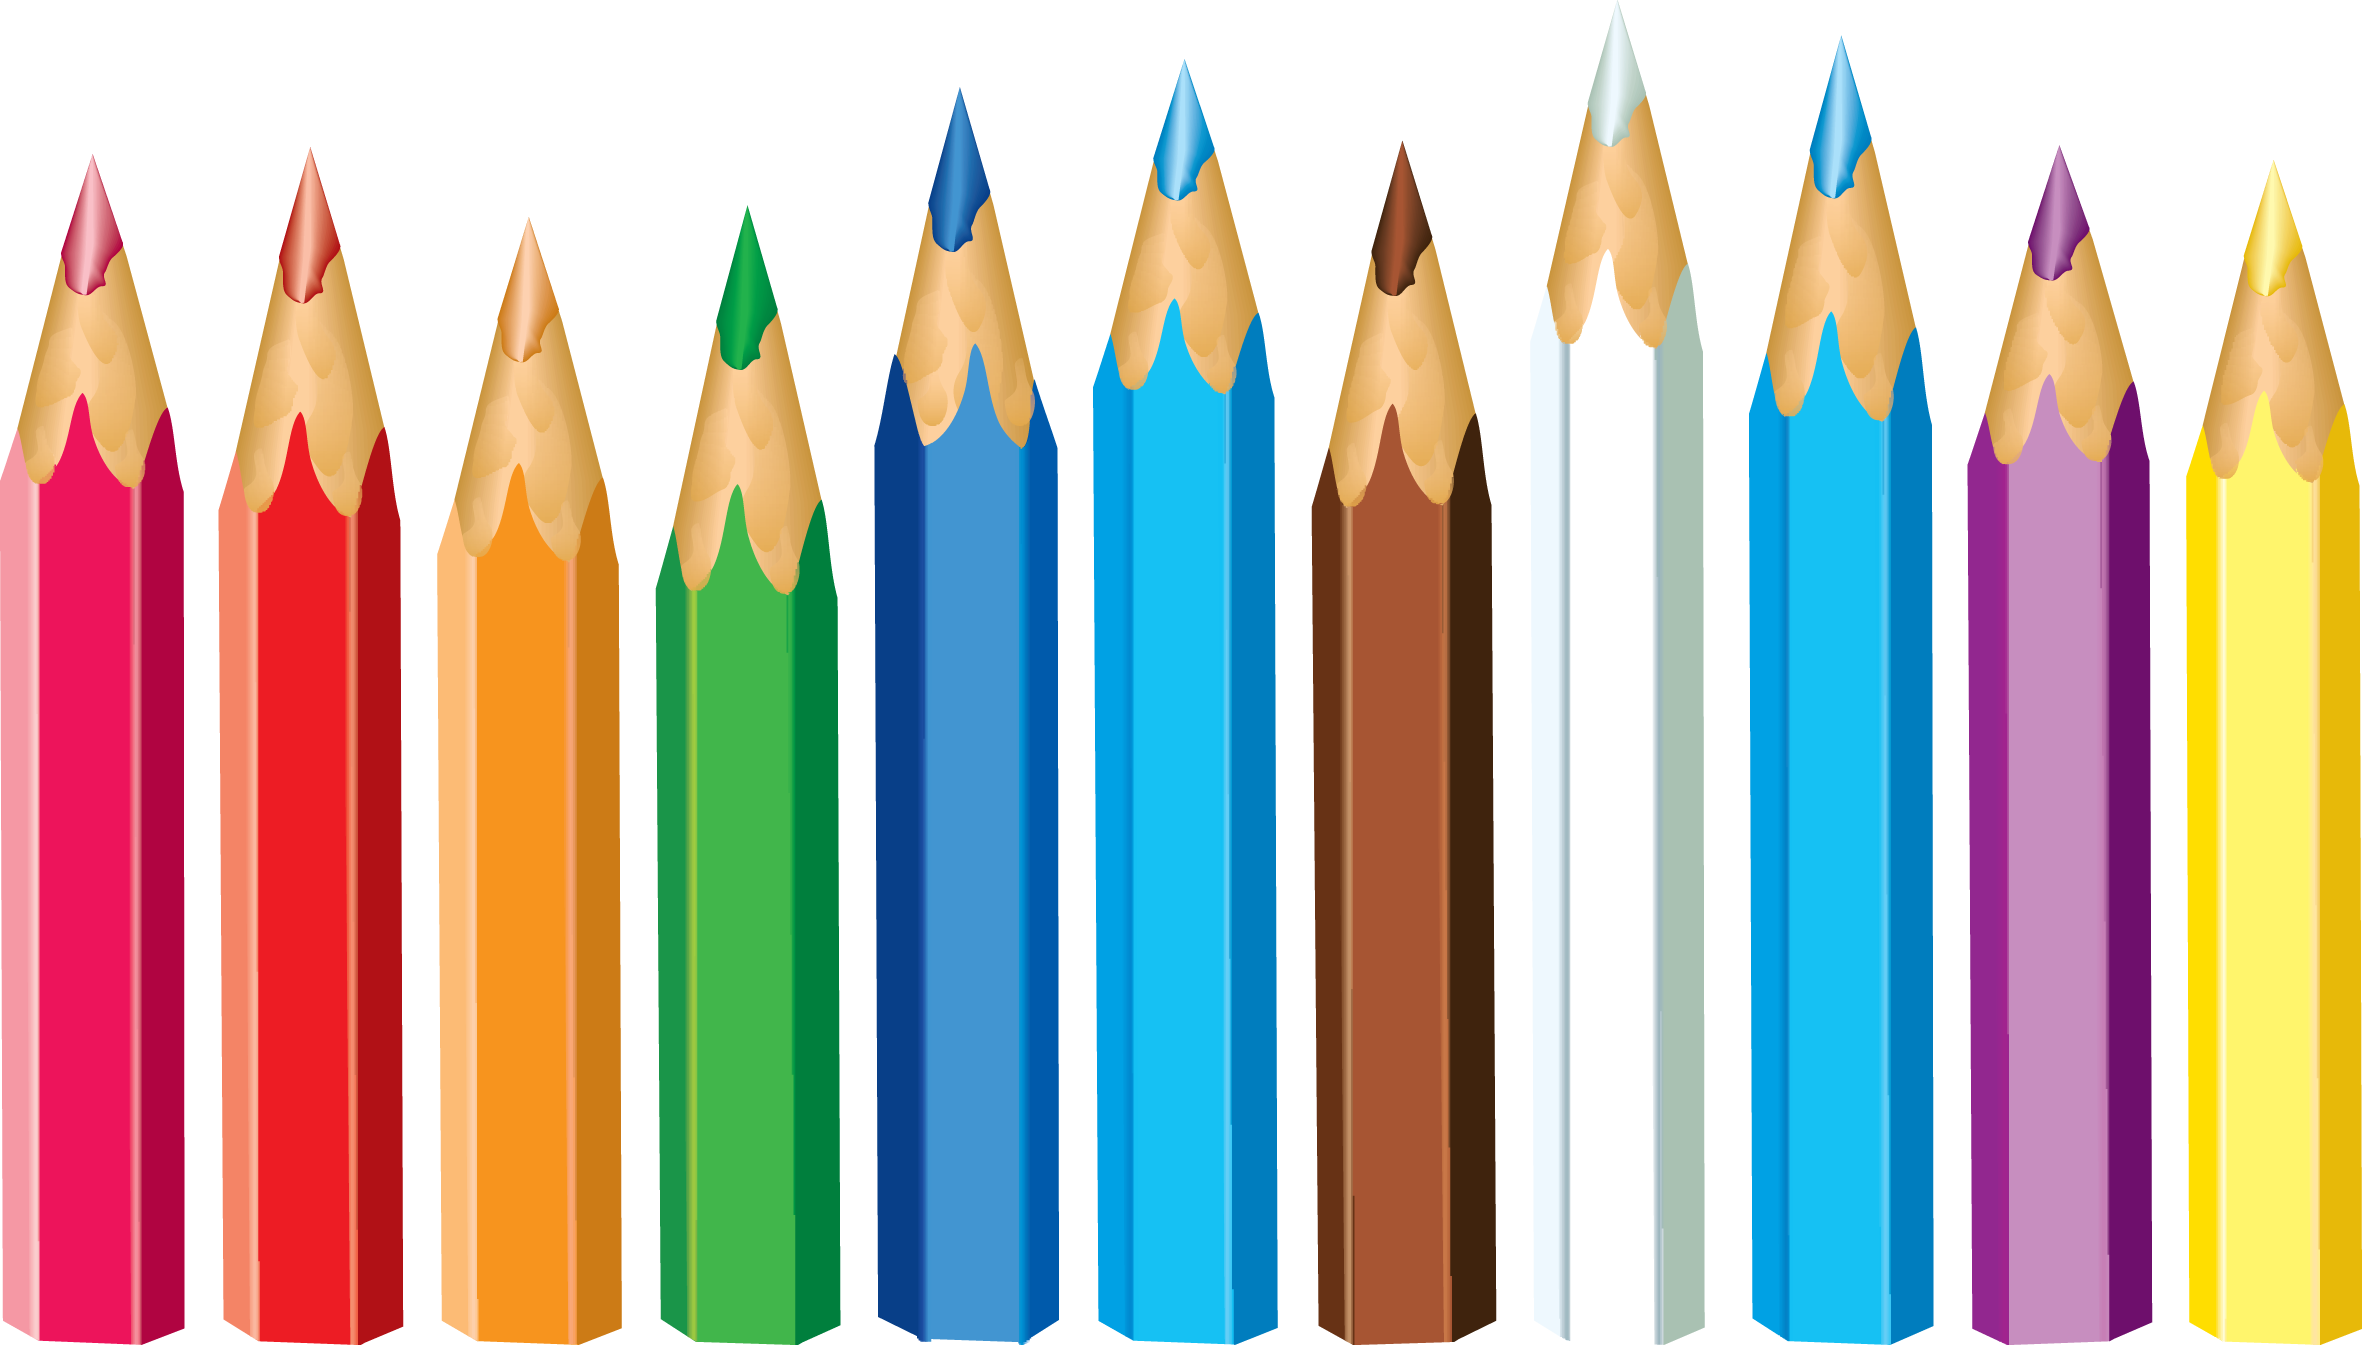 Pencil PNG Image   Pencil PNG Image image #683